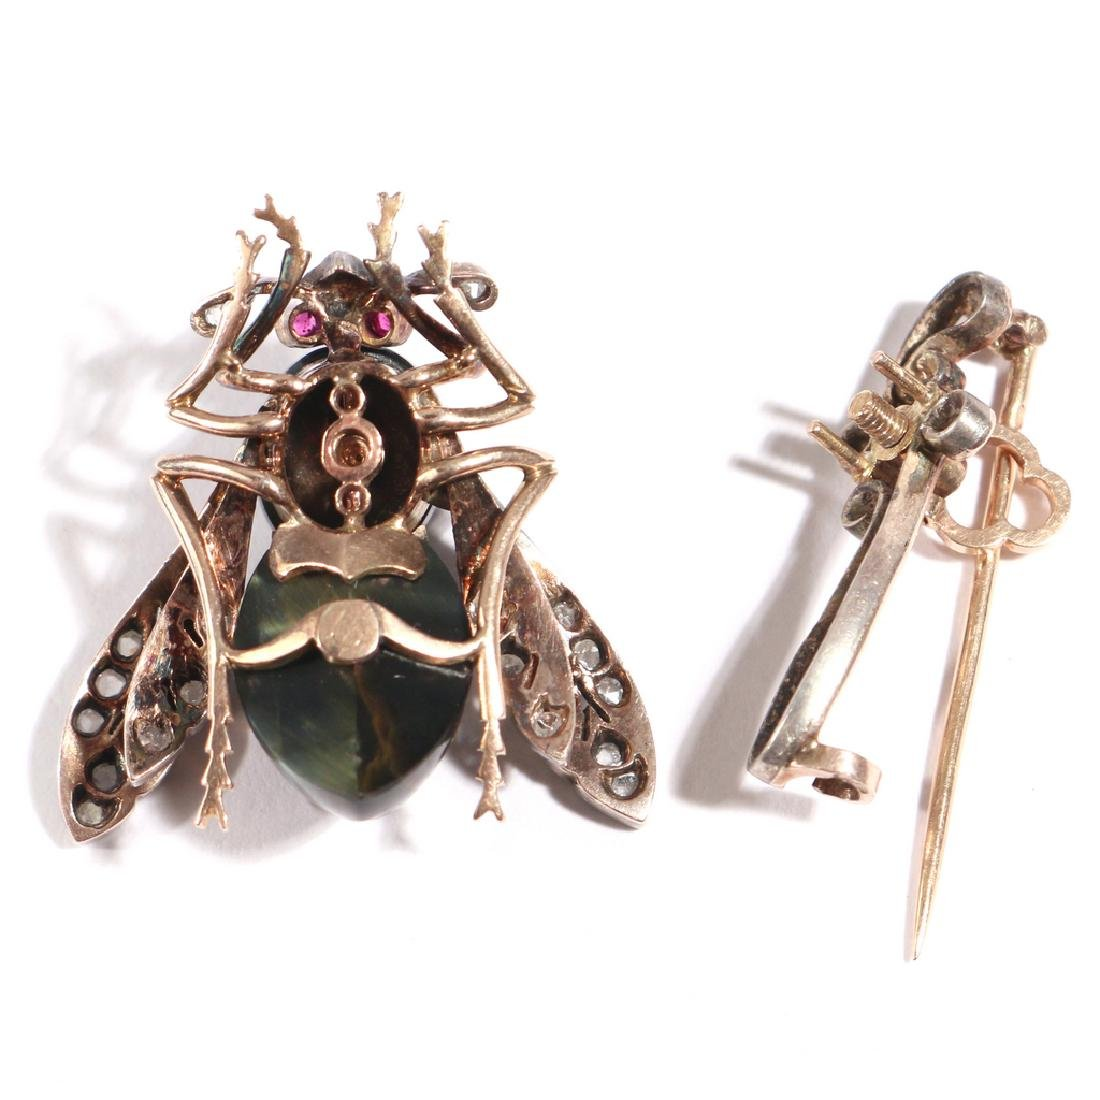 PHENOMENAL FRENCH NAPOLEONIC BEE PENDANT PIN - 7